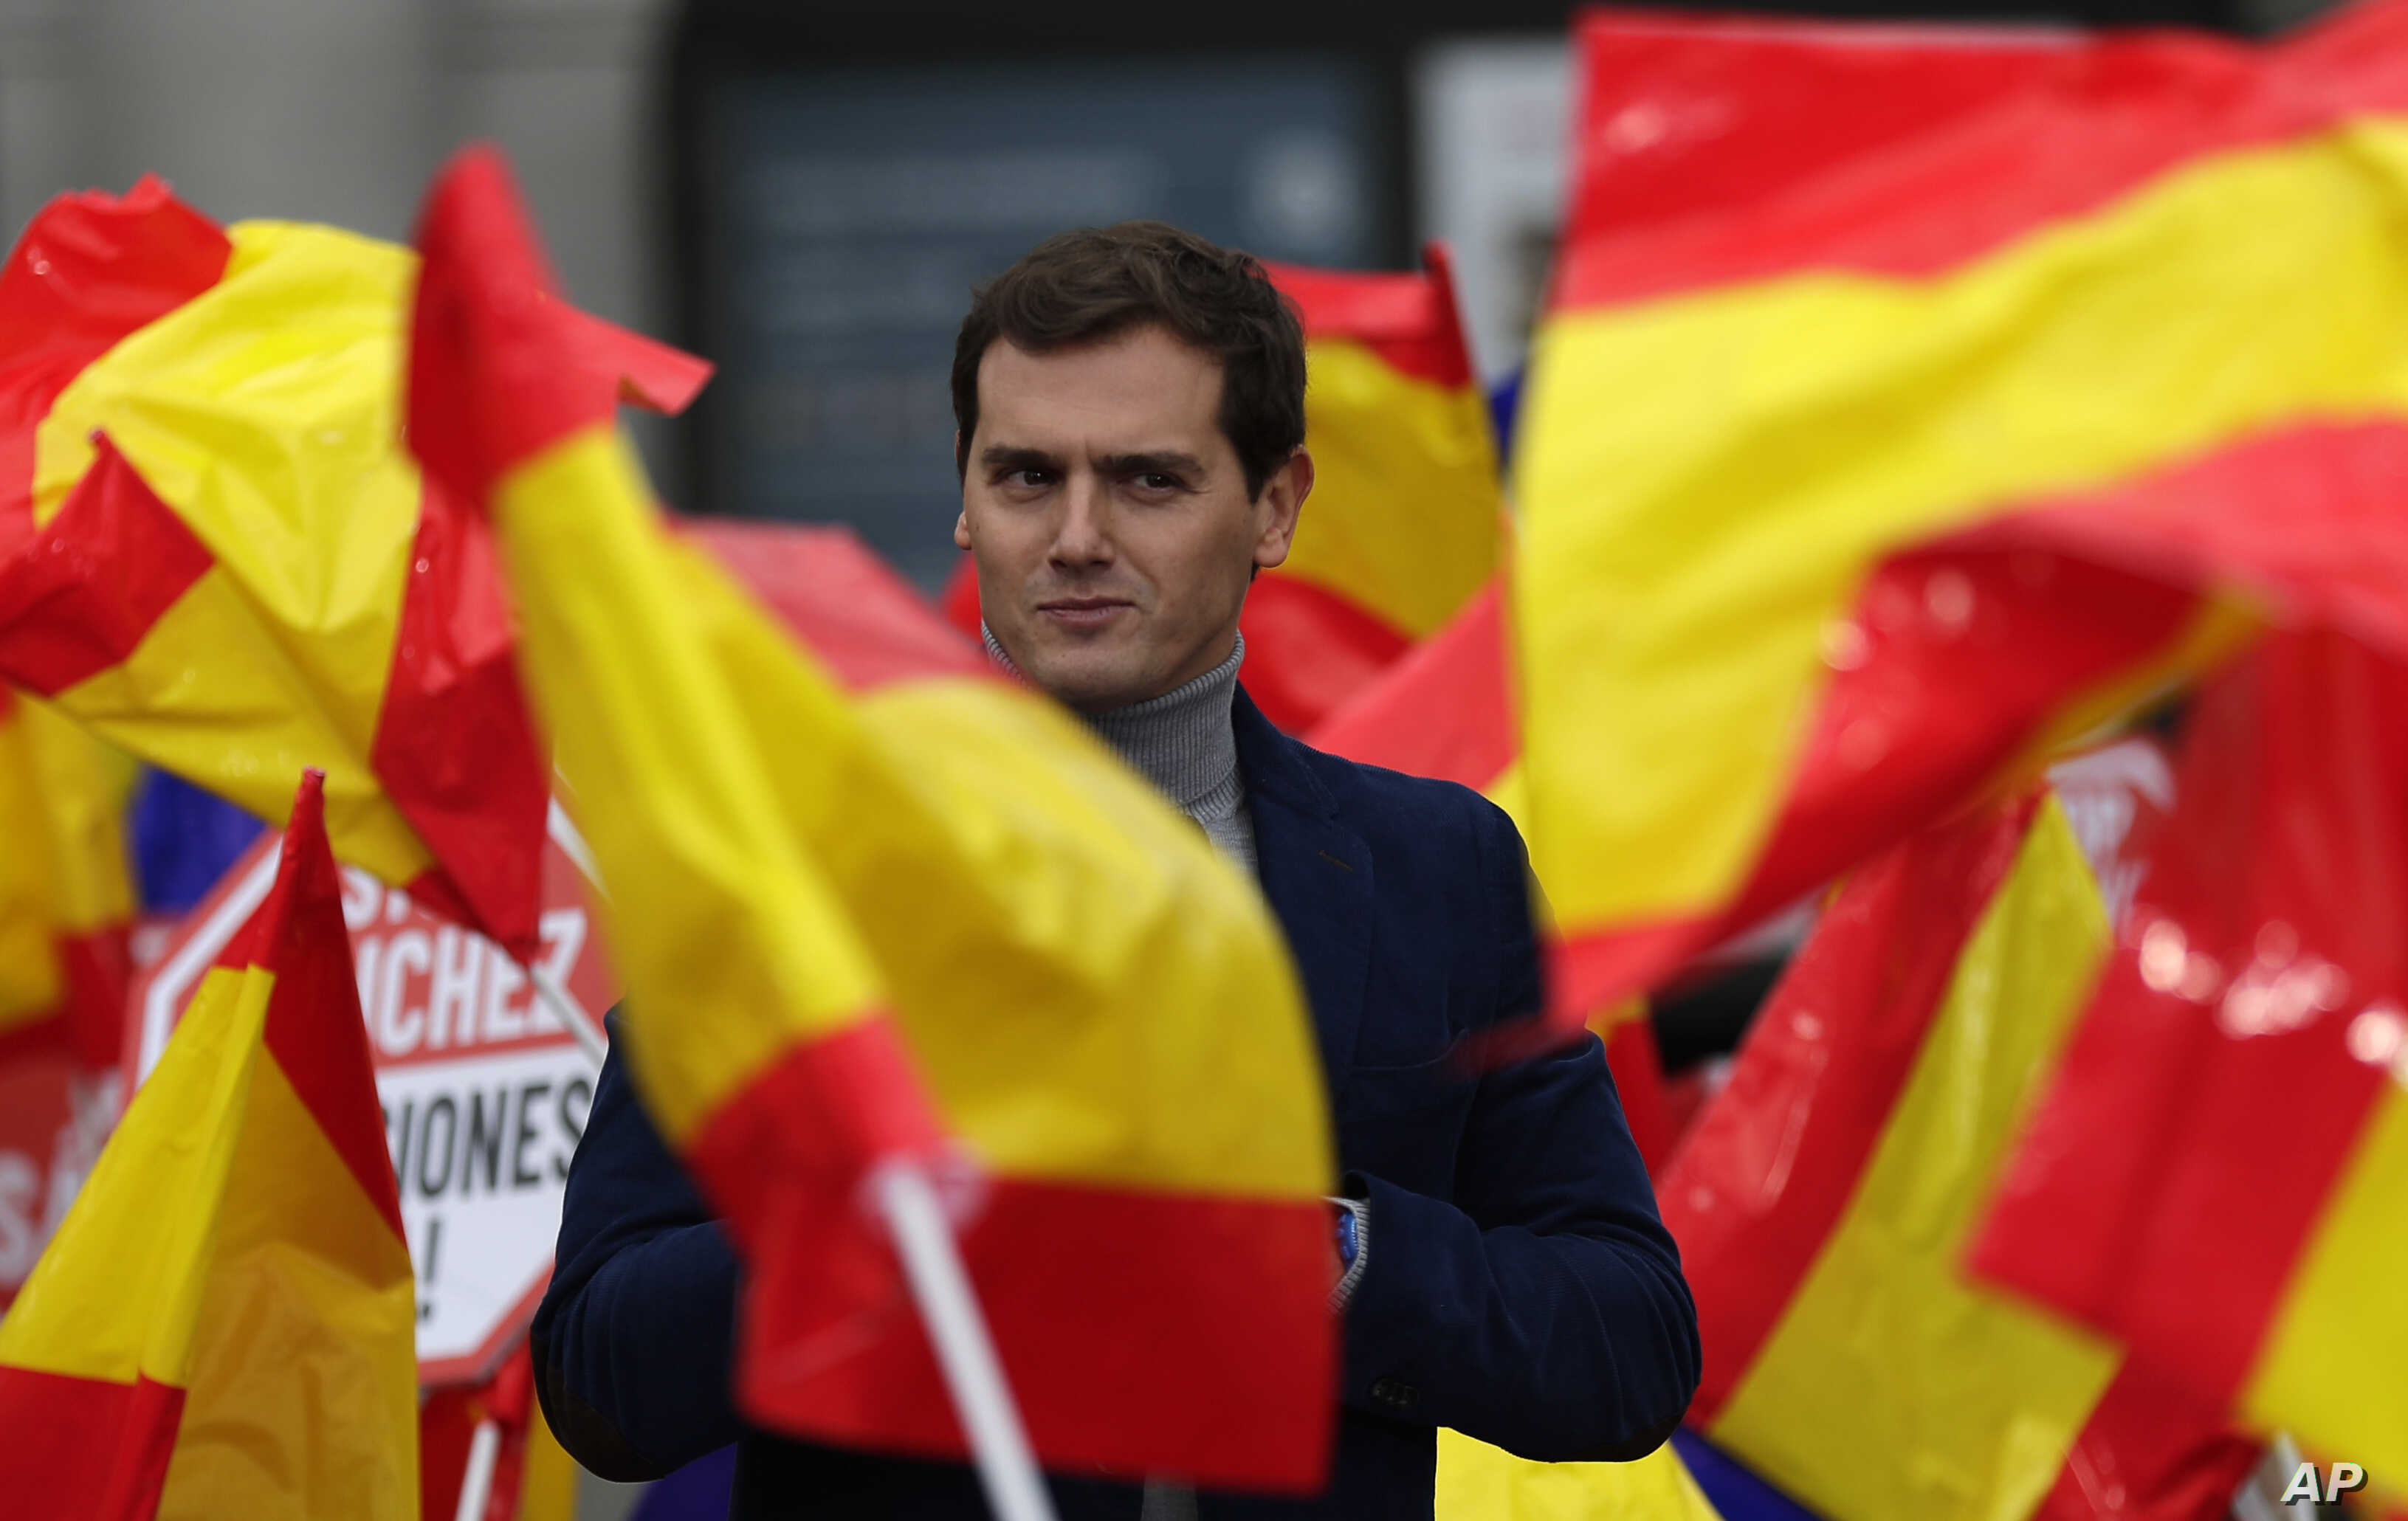 FILE - Leader of the centre right Ciudadanos party, Albert Rivera, addresses the crowd during political meeting demonstrating against Spain's Prime Minister Pedro Sanchez in Madrid, Spain, Saturday, Nov. 24, 2018.